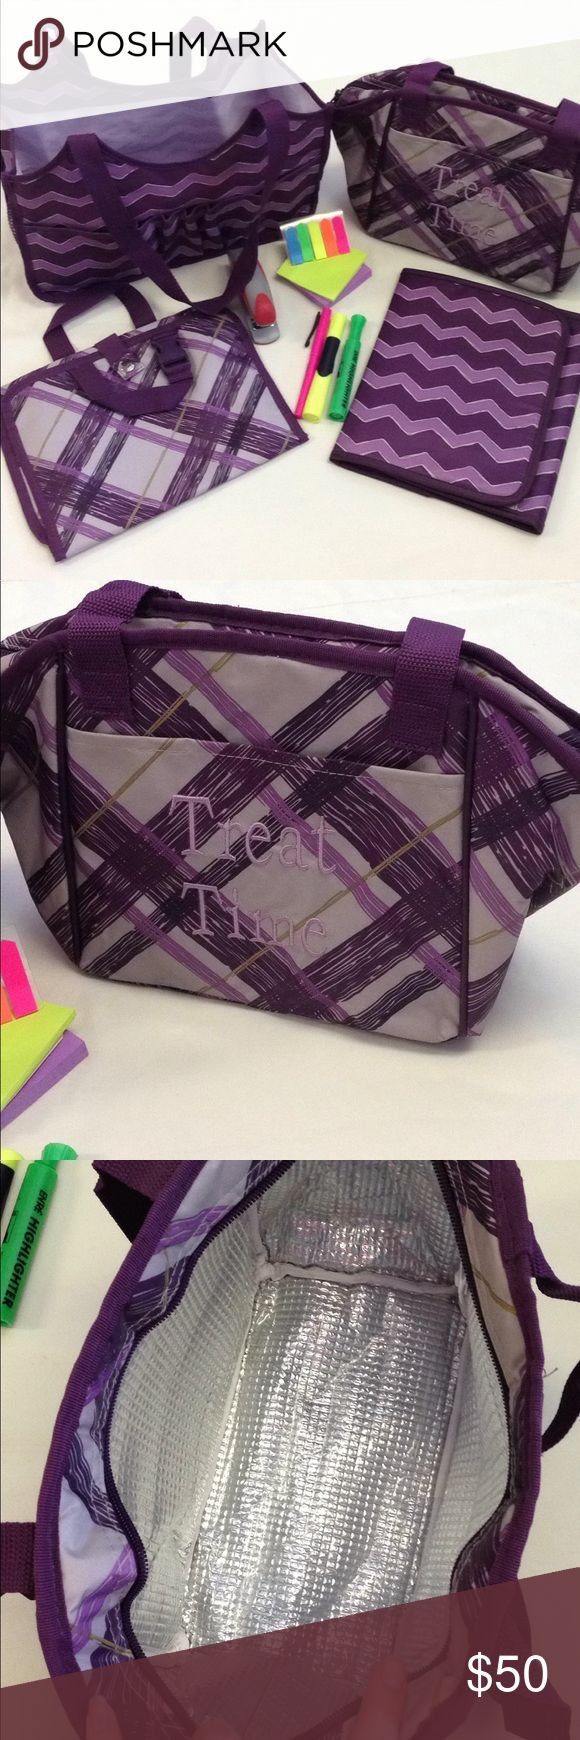 Bundle of 4 thirty-one purple chevron print bags This awesome bundle includes a large tote, insulated lunch box, organizer, and tablet case/organizer. The tote and organizer are in like new condition and the tablet case and lunch box are very gently used. All in excellent condition!   Tote-two front pockets, pencil holders, and 2 size mesh pockets. 13x6.5x7.6 Lunch box- front open pocket and zipper pocket. 10x6x8  Tablet-not sure what kind of talent it holds. Measures 10x8 Organizer 11x9…